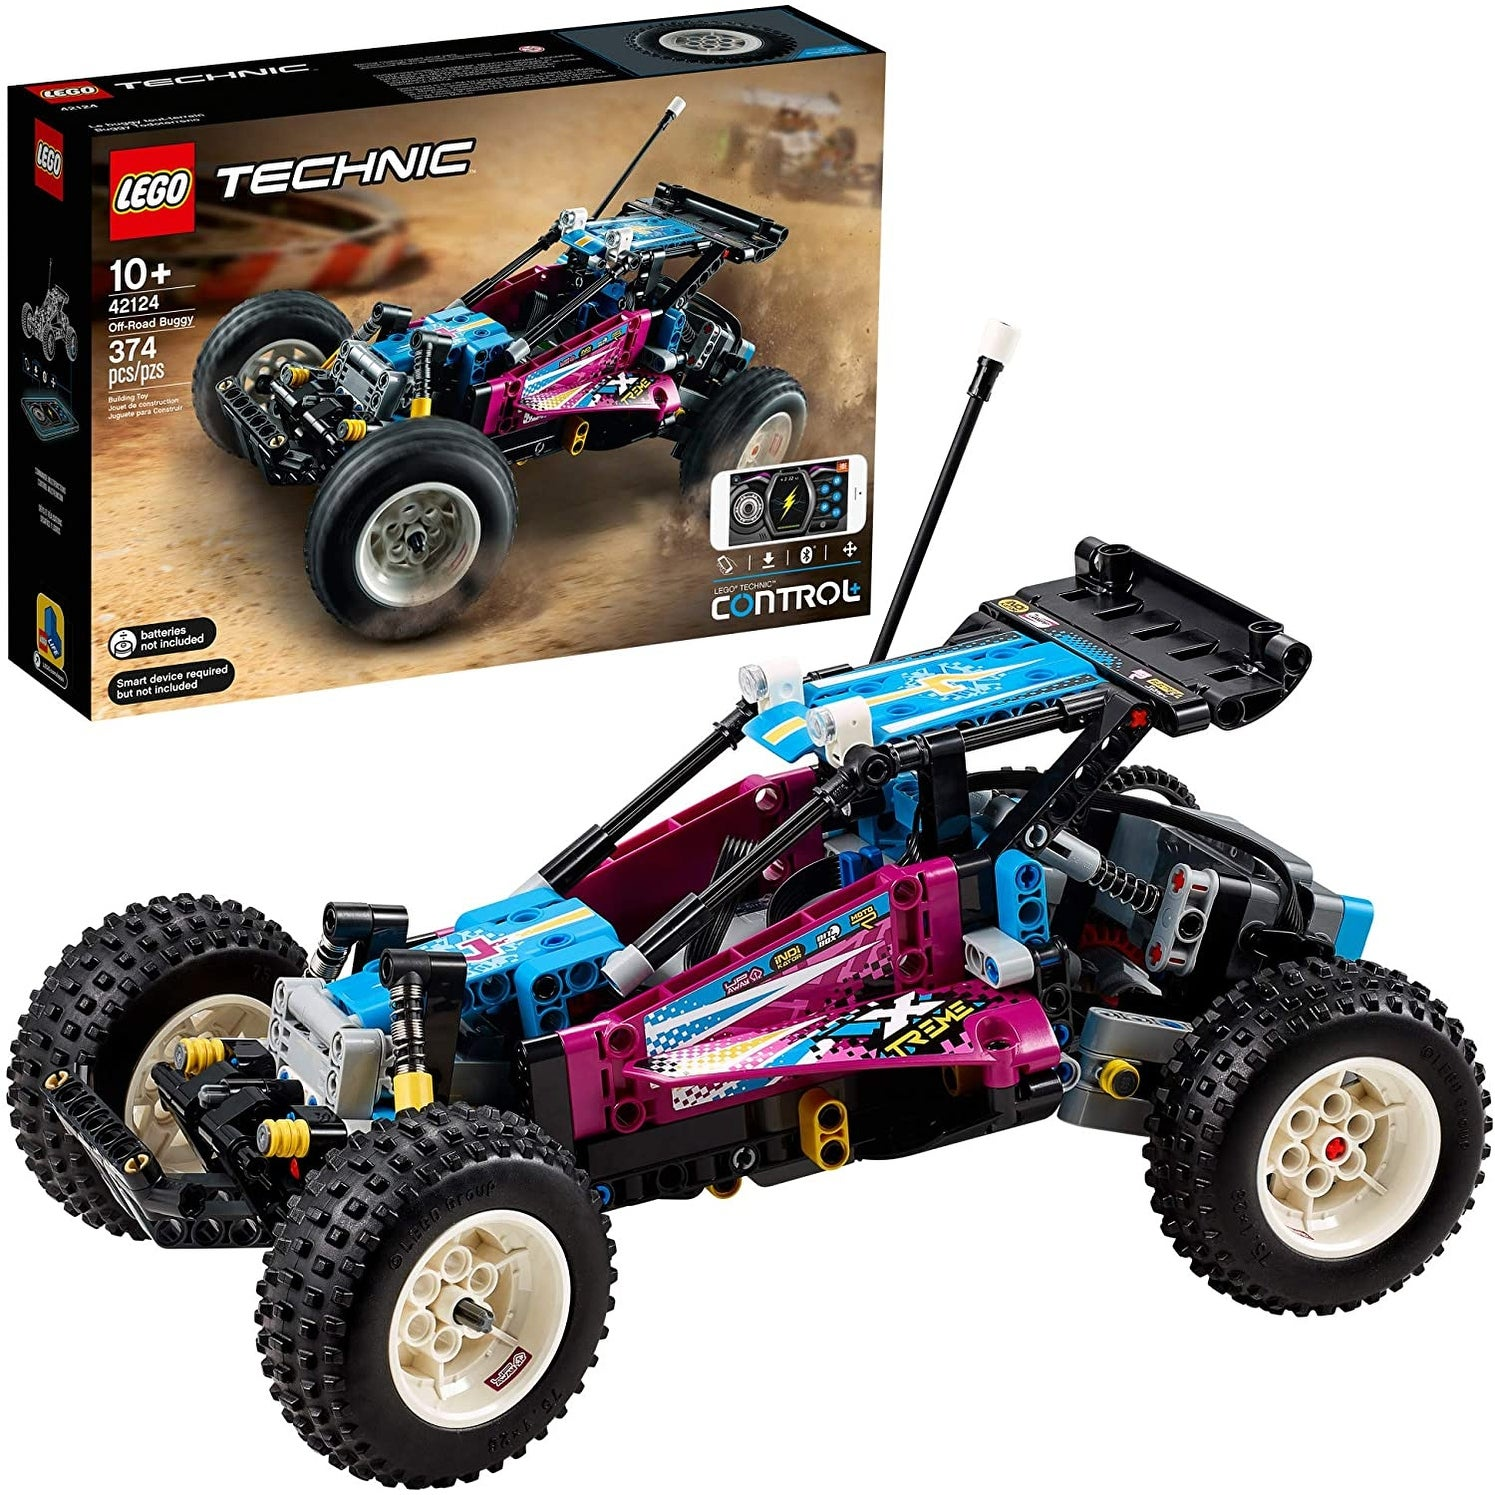 Lego 42124 Technic Off-Road Buggy Model Building Kit, 374 Pieces